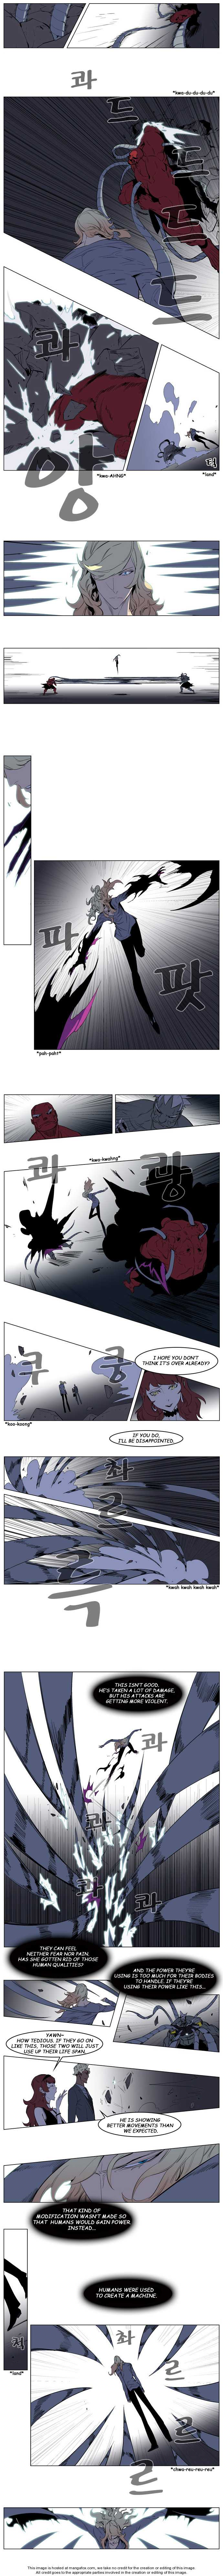 Noblesse 148 Page 2